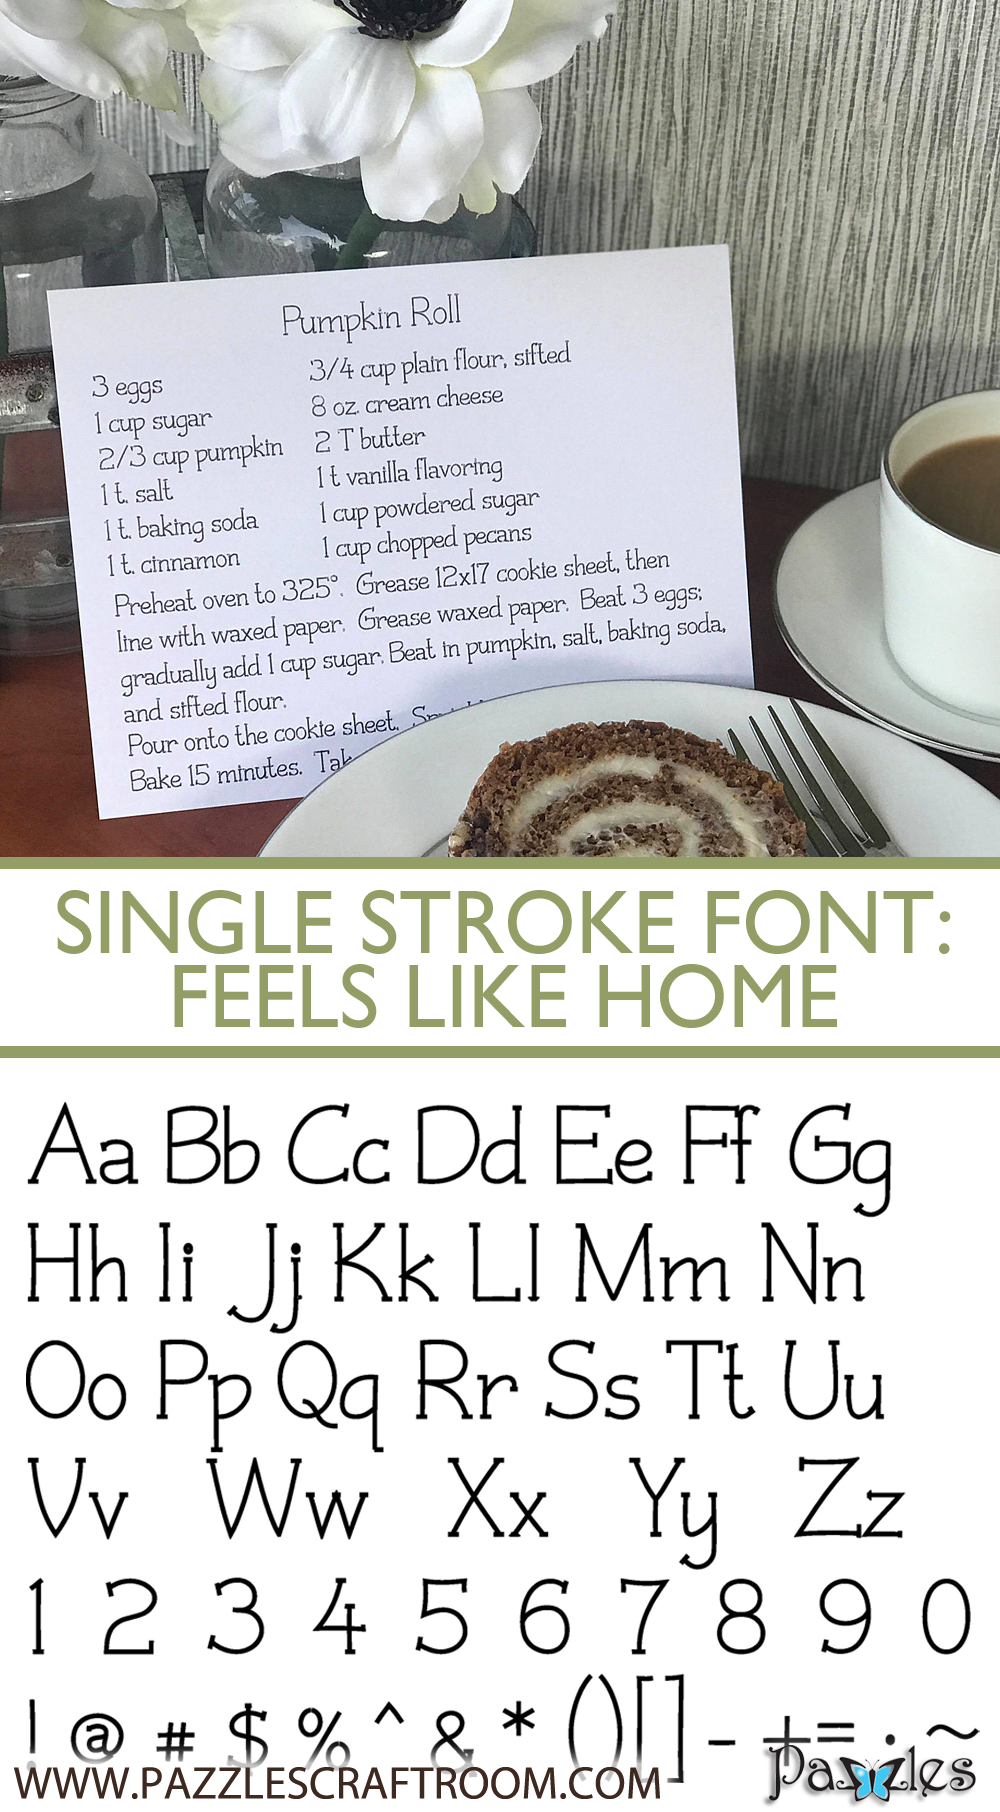 Pazzles DIY Feels Like Home Single Stroke Font or Single Line Font for crafting and engraving by Leslie Peppers